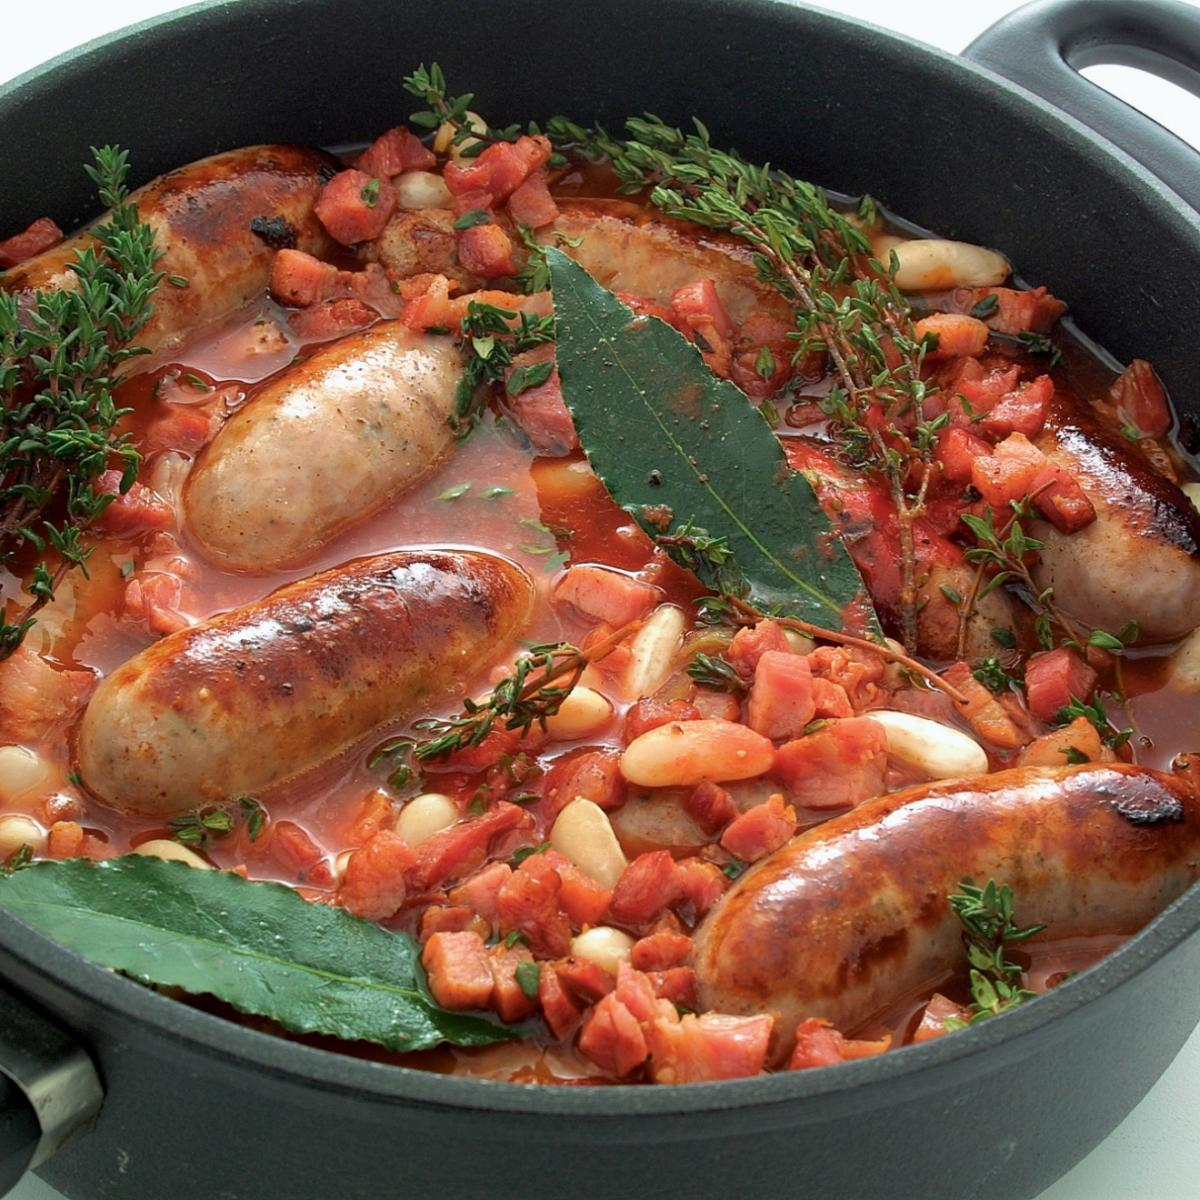 A picture of Delia's Poor Man's Cassoulet recipe